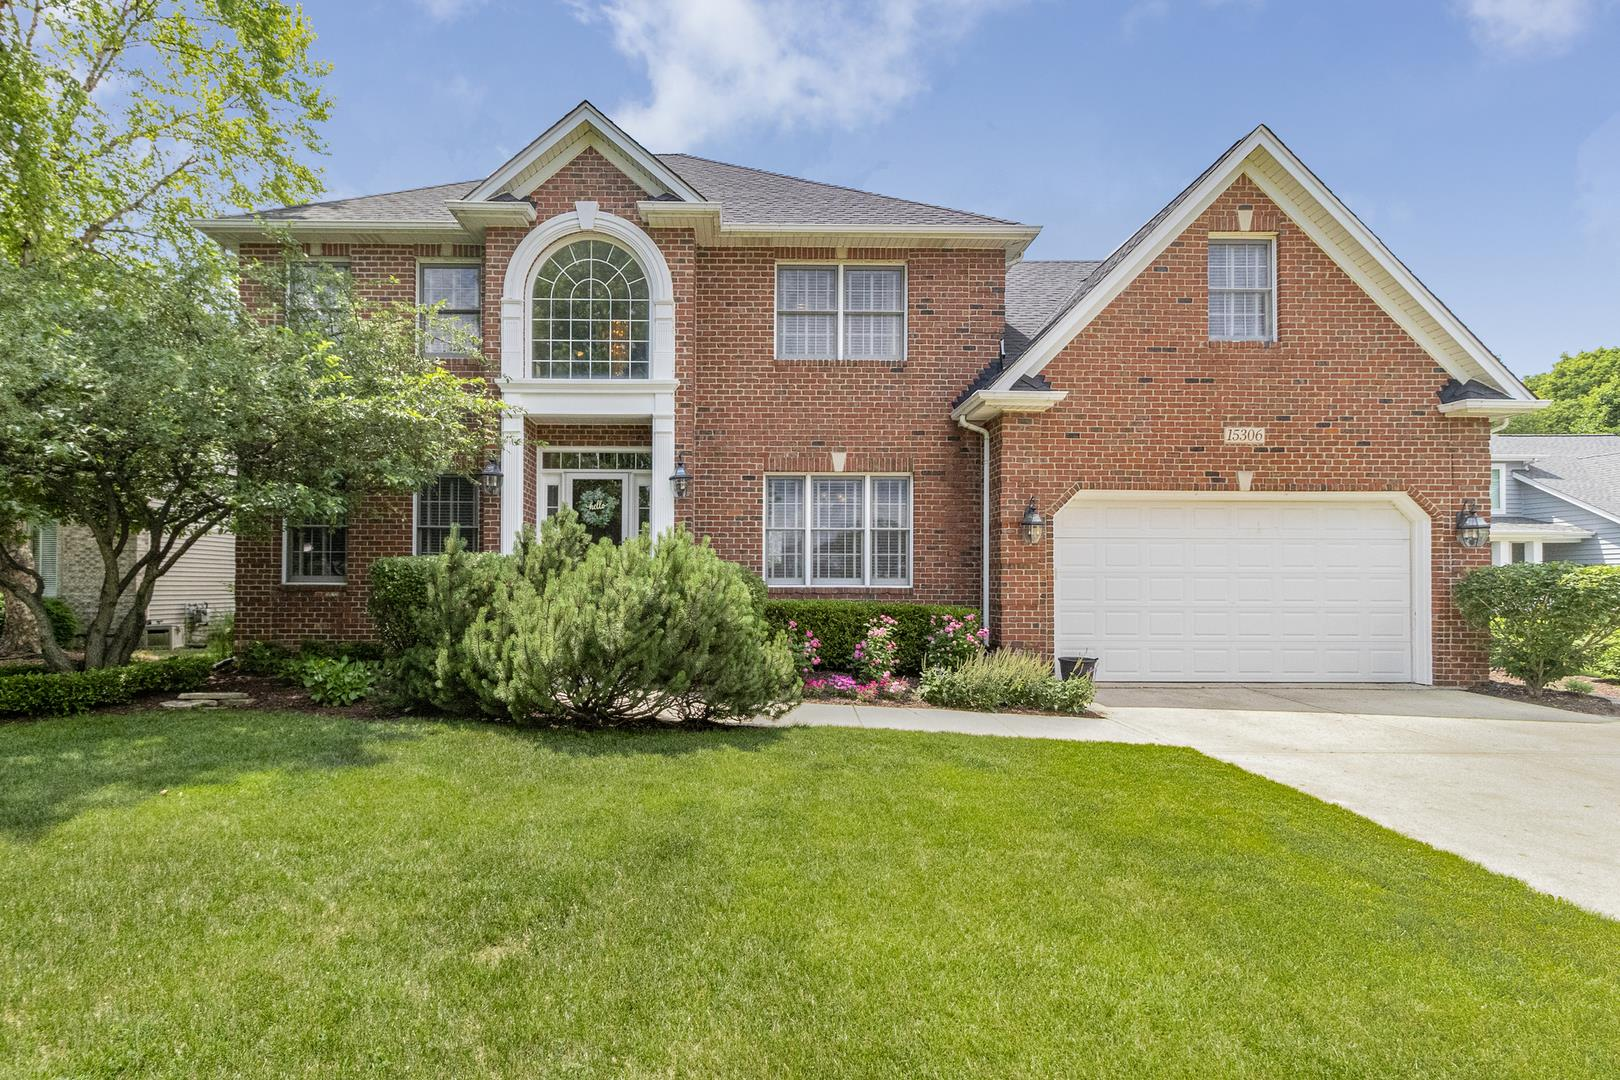 15306 Lincolnway Circle, Plainfield, IL 60544 - #: 11179322